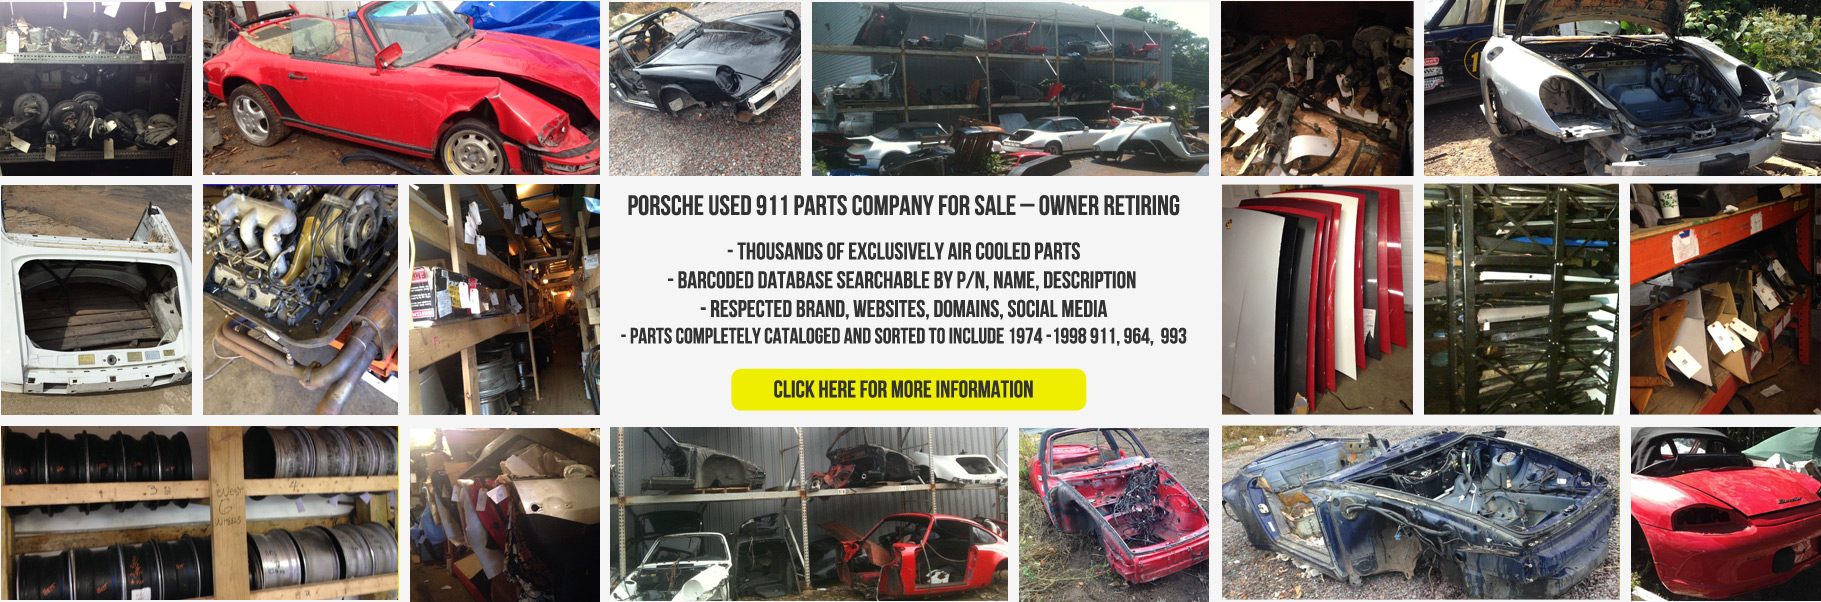 Porsche Parts Business For Sale